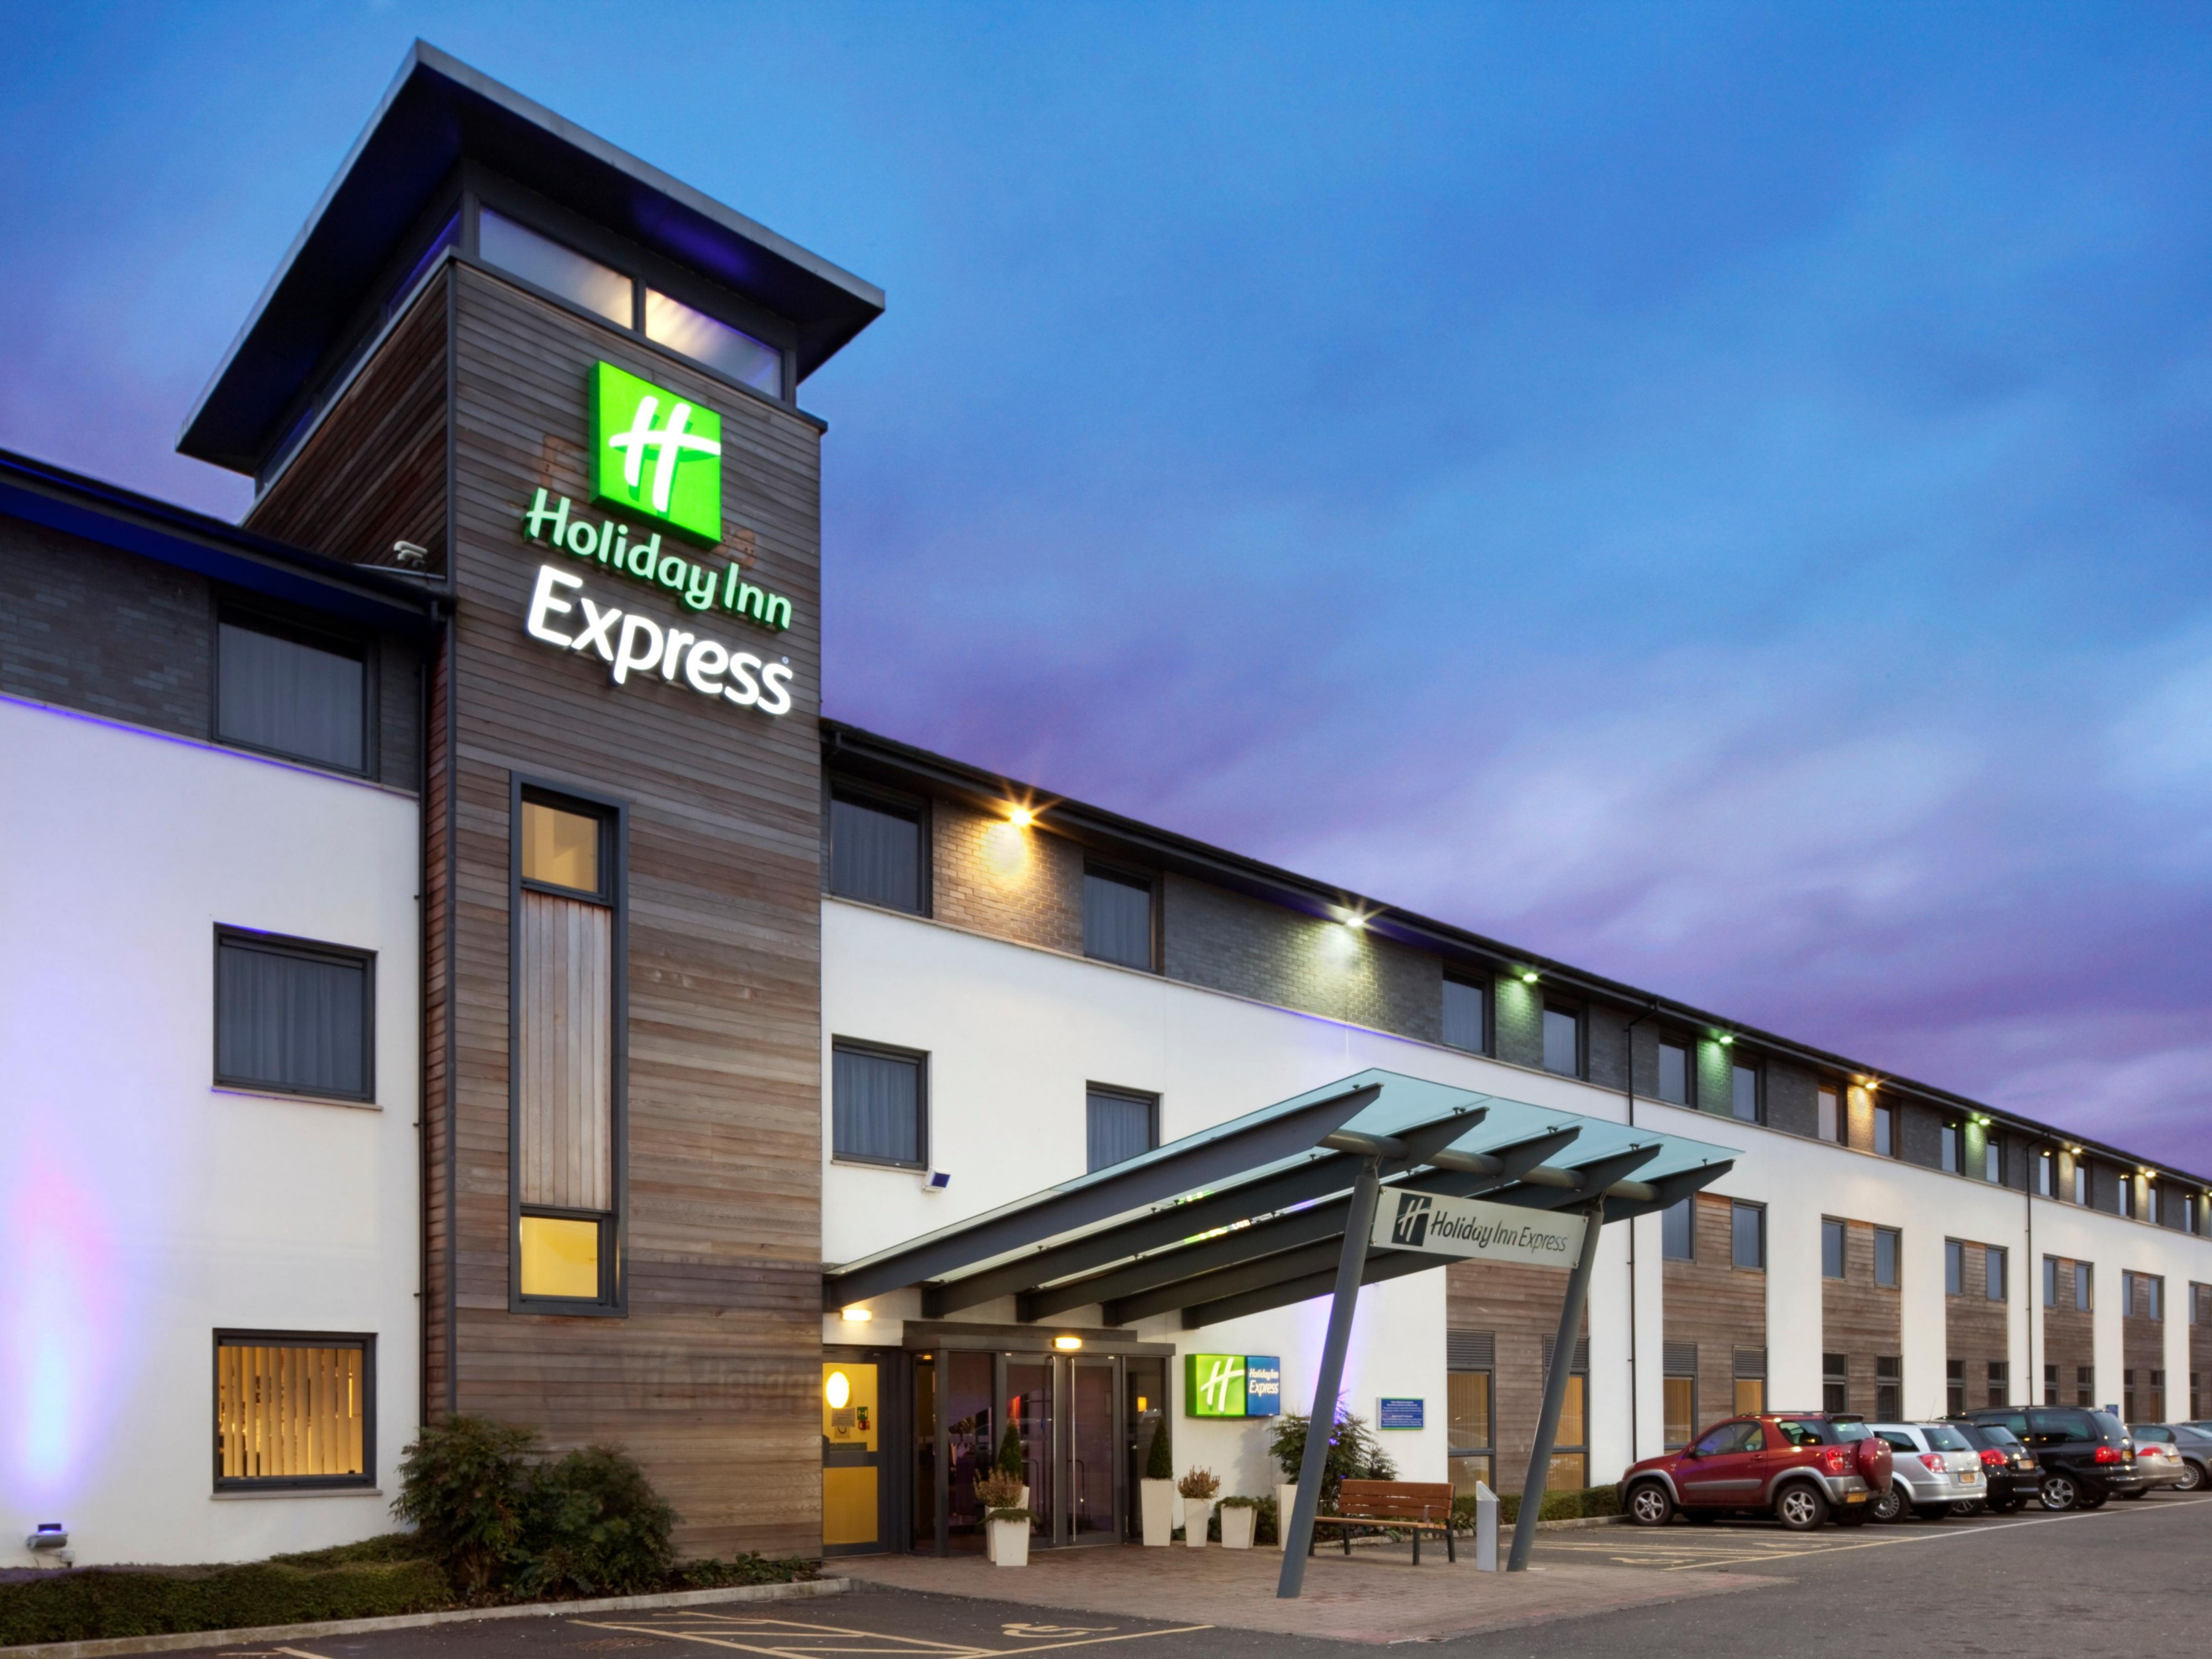 Welcome to the Holiday Inn Express Cambridge hotel